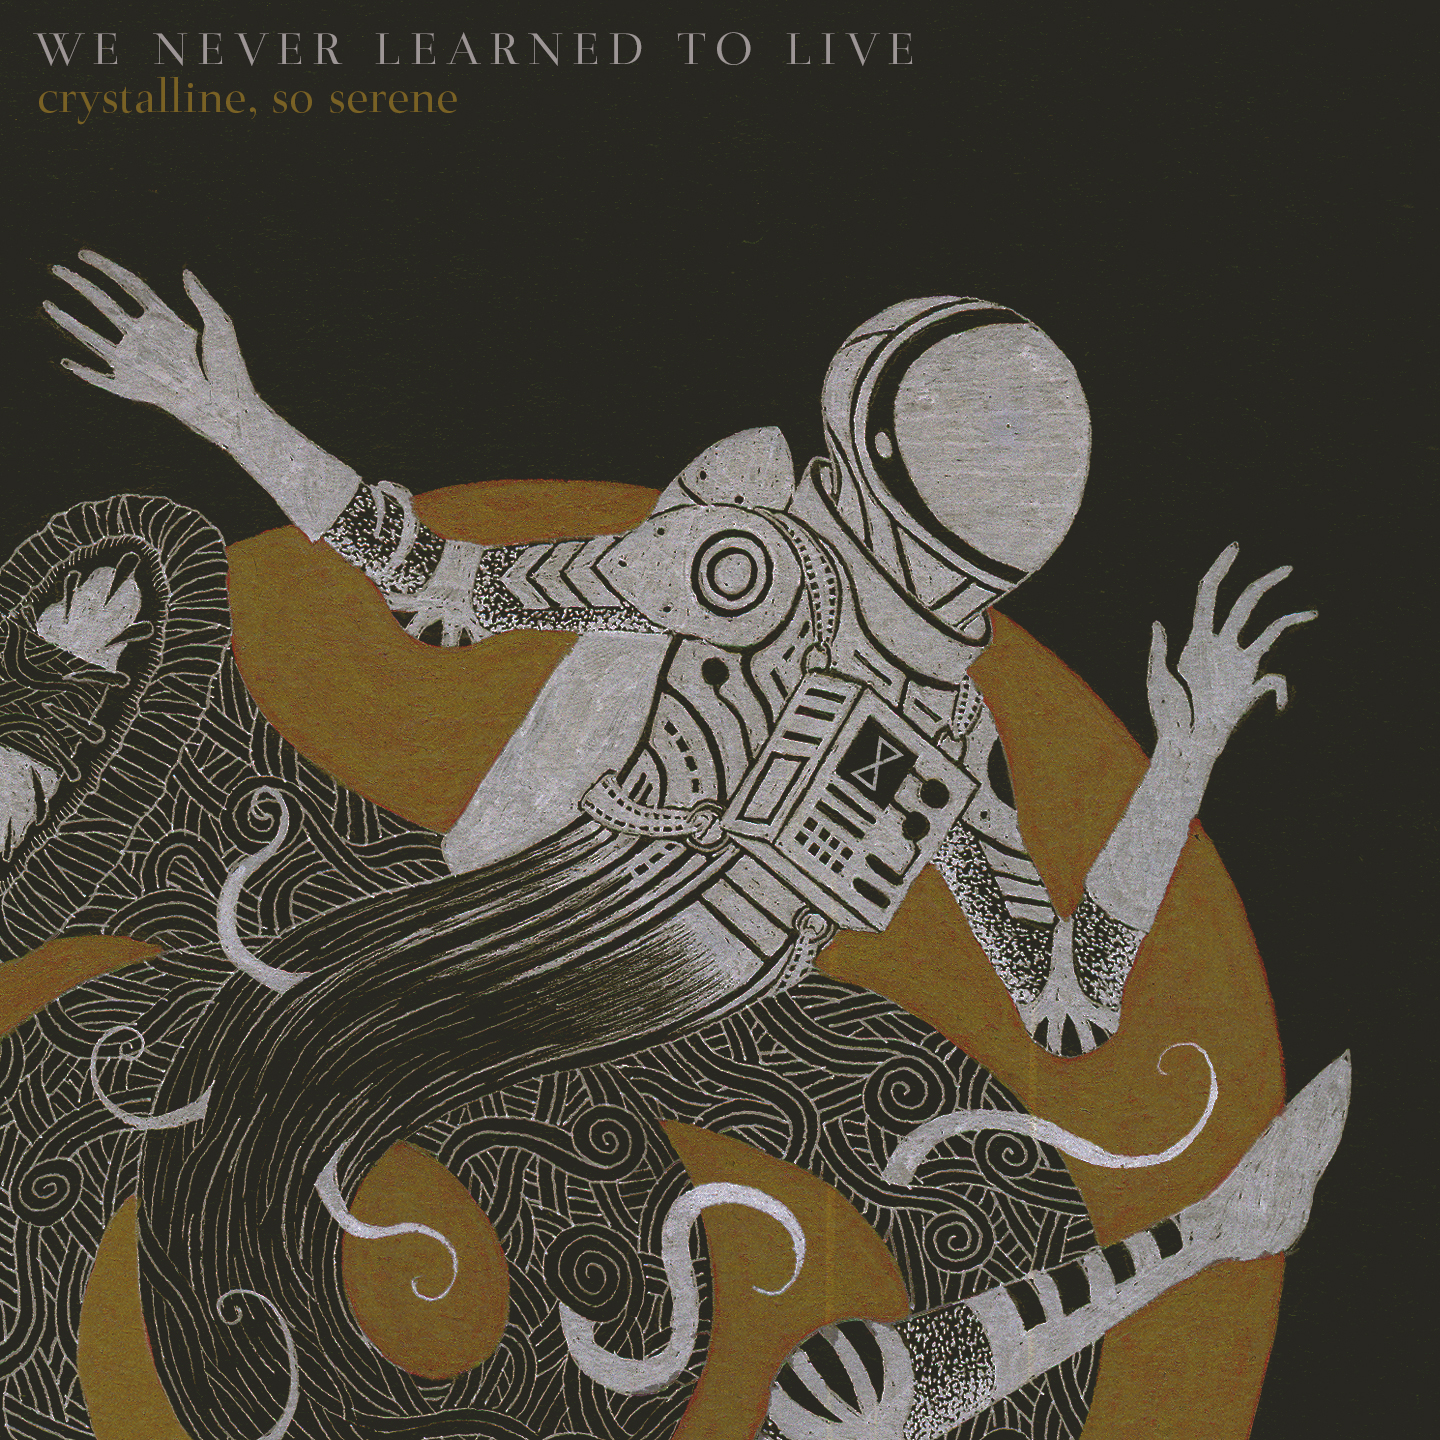 We Never Learned To Live - crystalline, so serene digital single